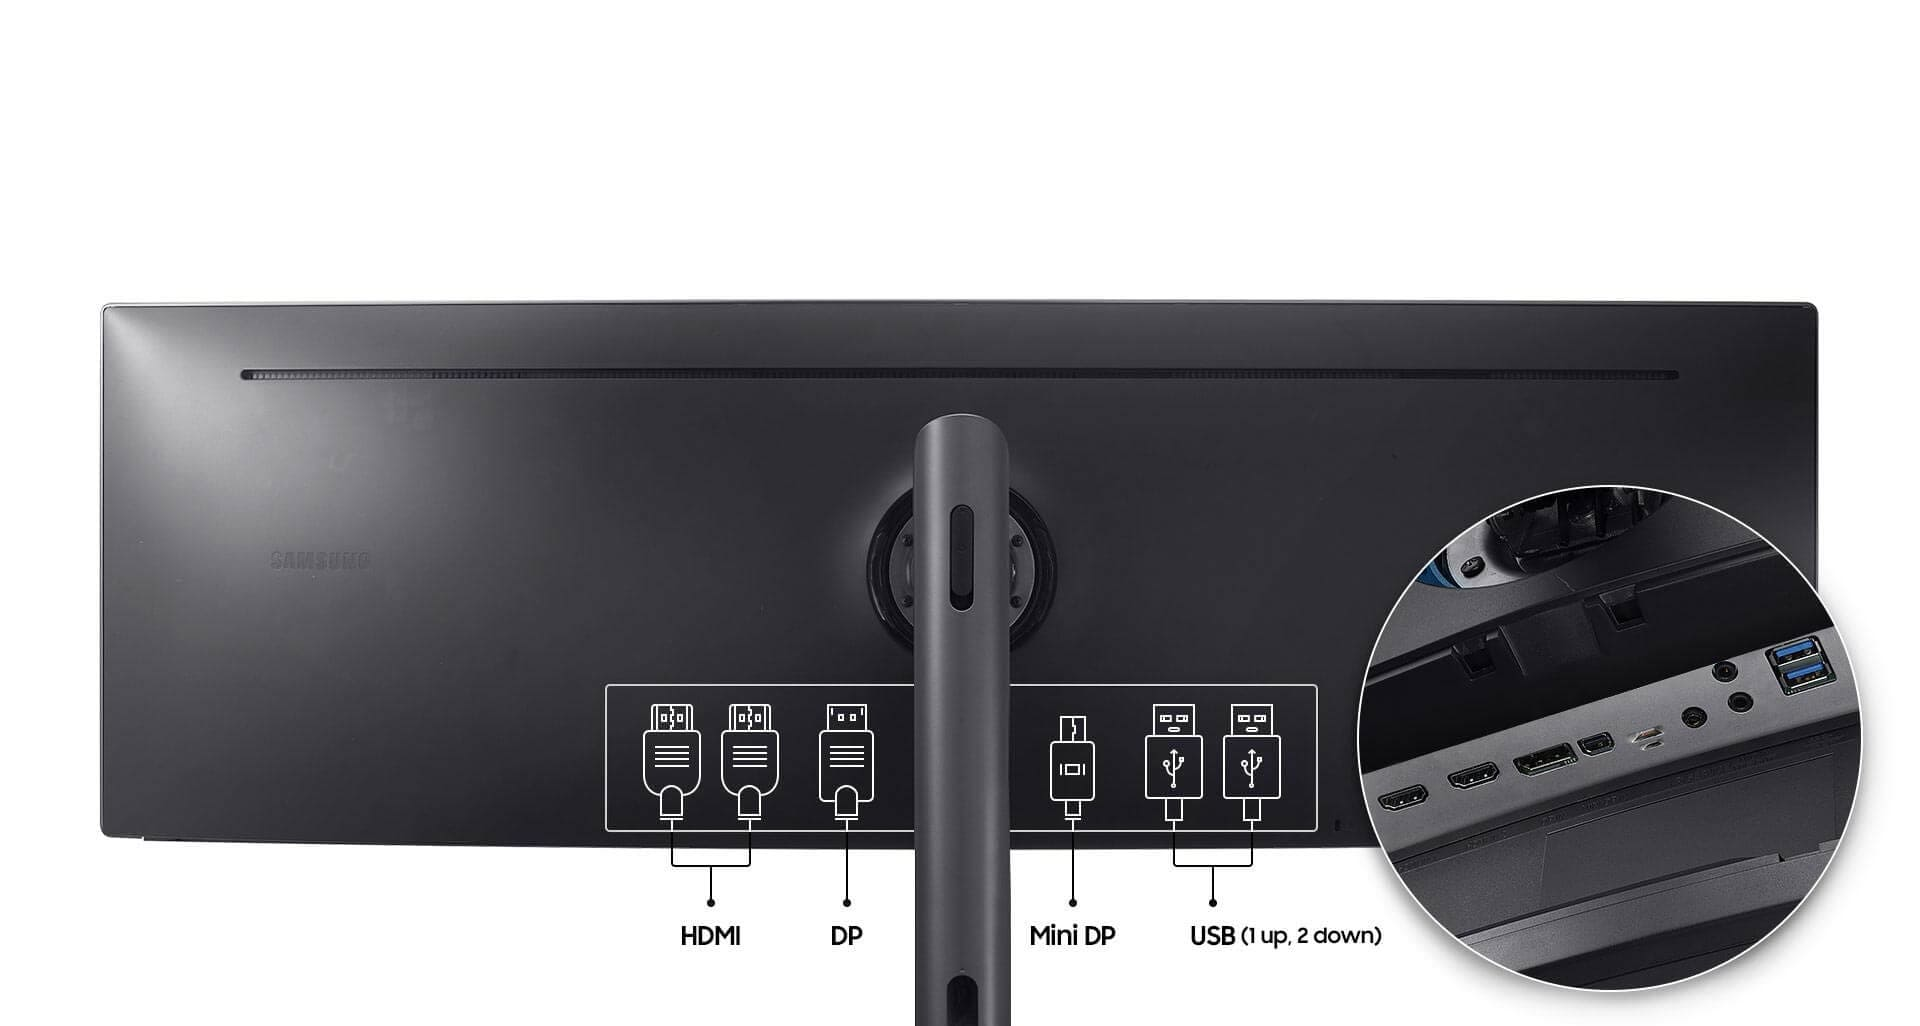 Multiple input ports that connect to any device